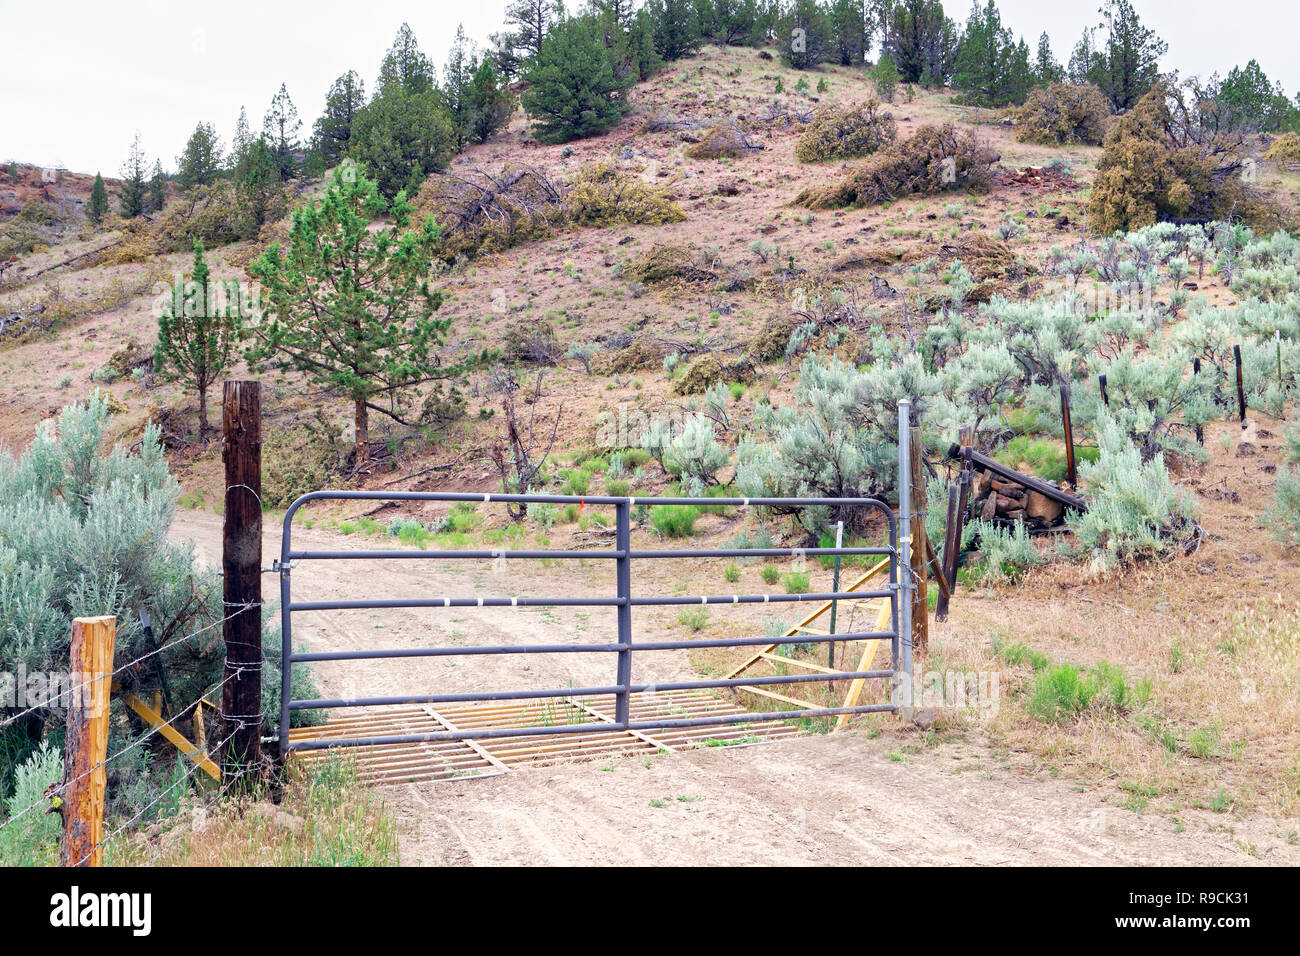 42,893.03521 metal BLM gate on a one lane dirt rural backcountry road in the high desert, standing & cut juniper trees & sagebrush, Oregon, USA - Stock Image